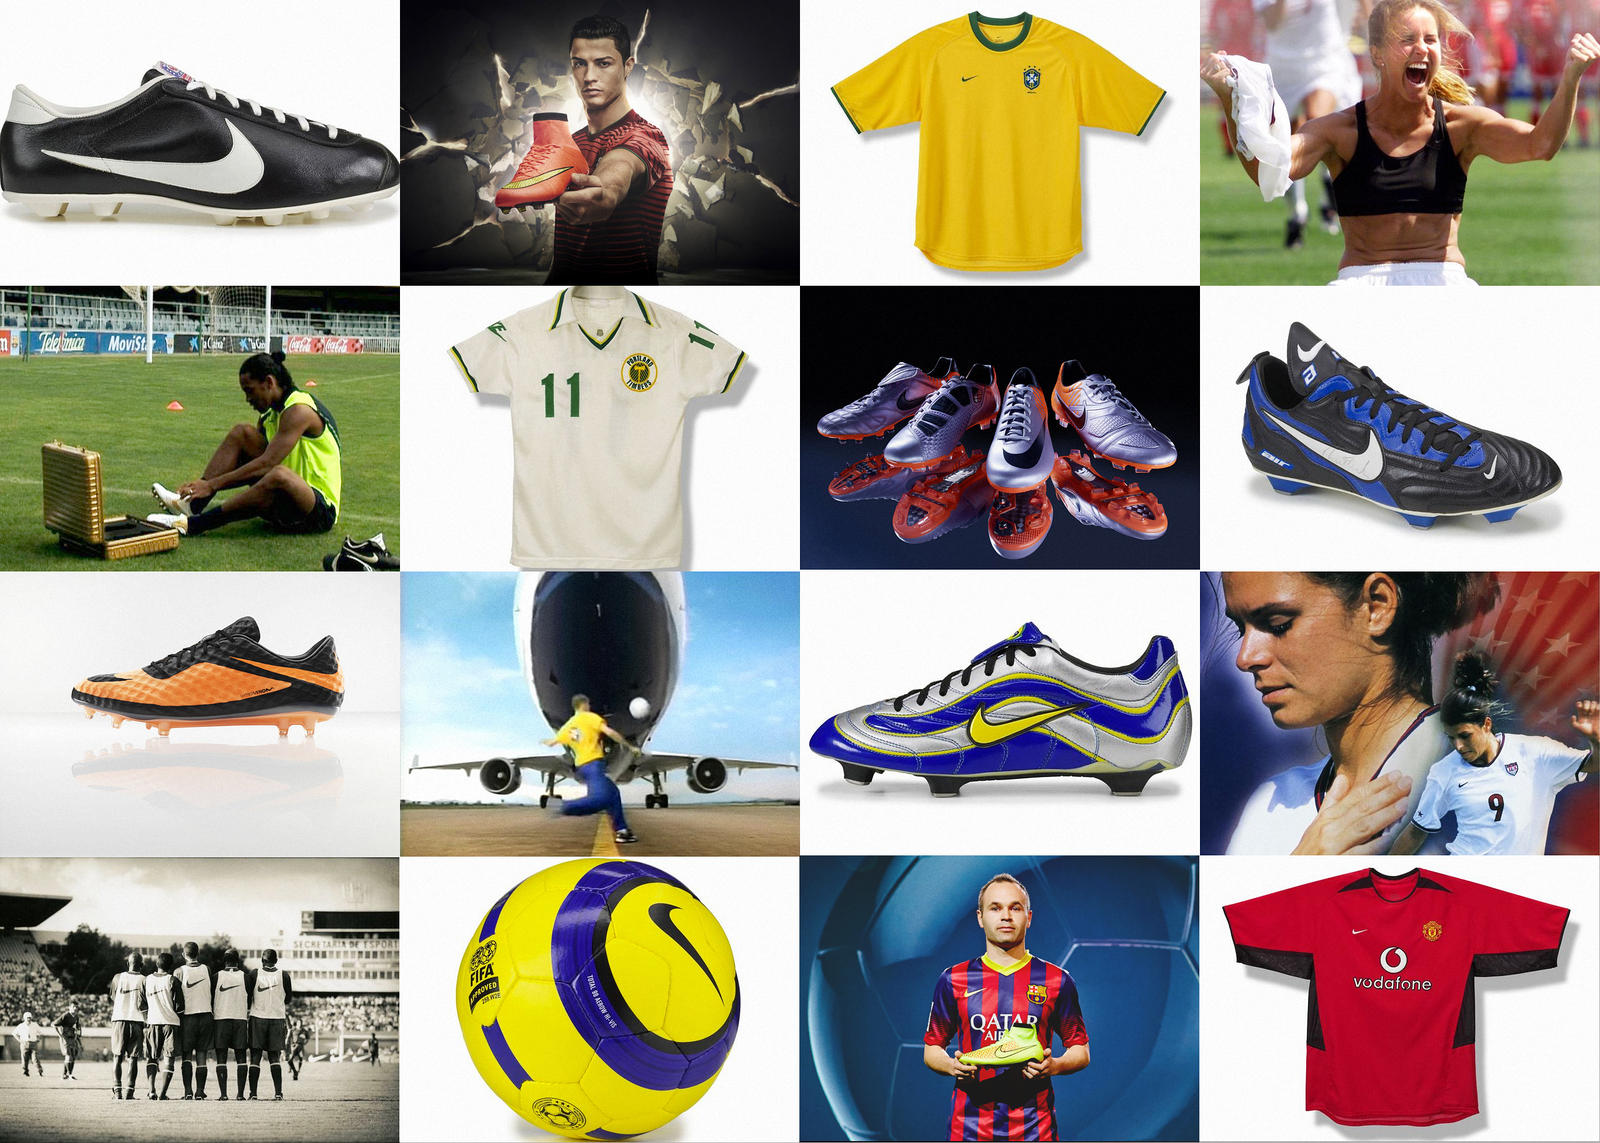 Definitive History of Nike in Football